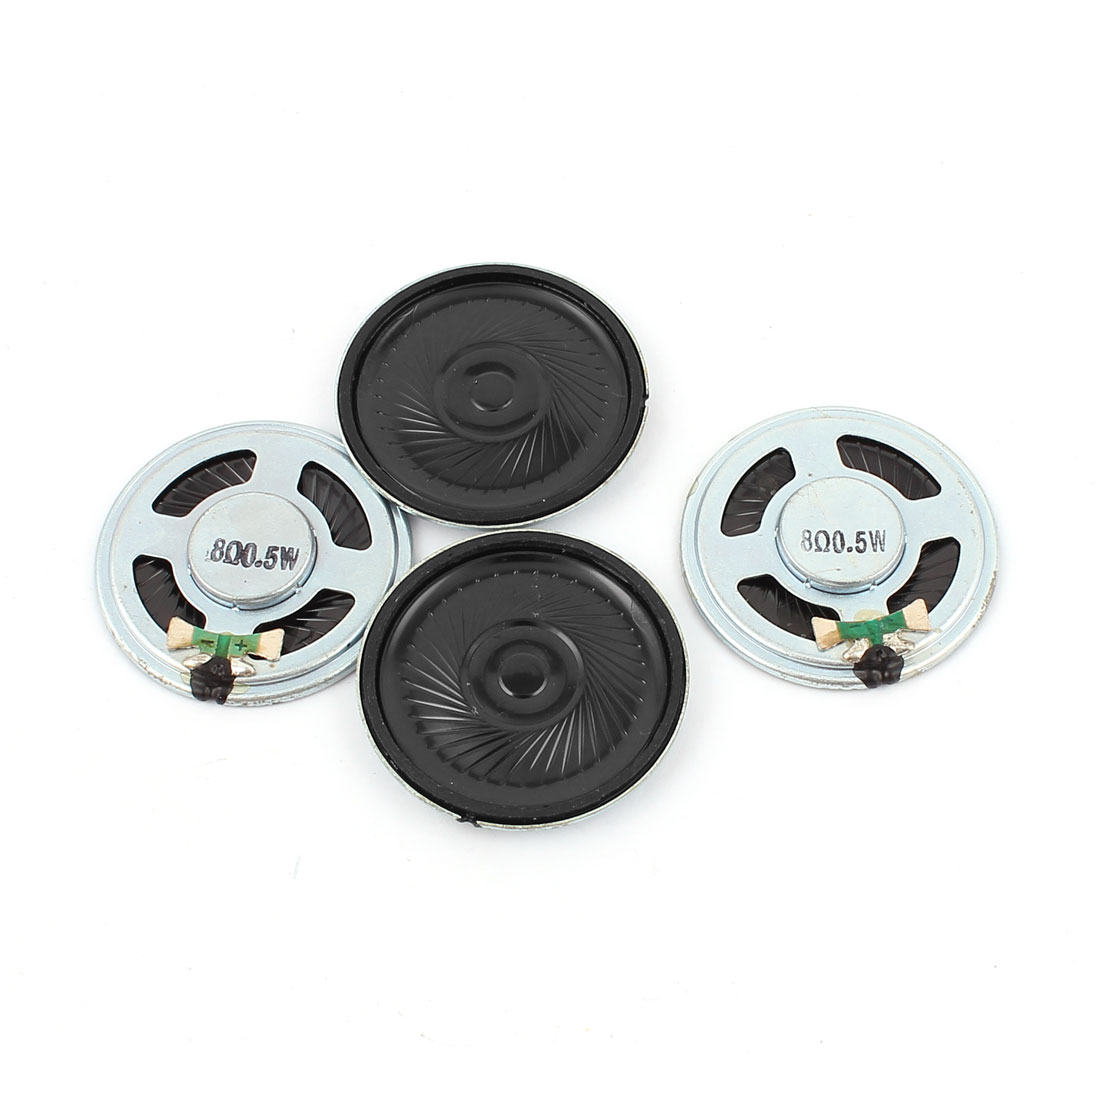 4 Pcs 40mm 8 Ohm 0.5W Metal Shell External Magnetic Speaker Loudspeaker Silver Tone